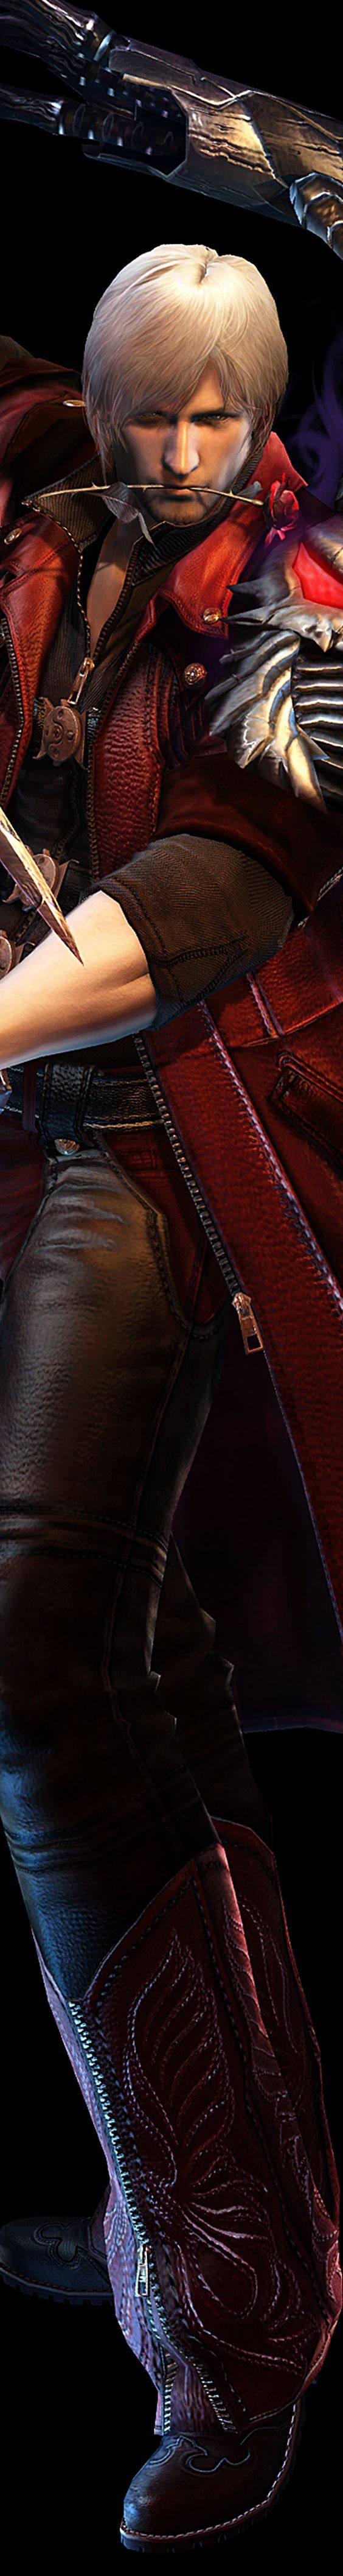 Dante as he appeared in Devil May Cry 4.